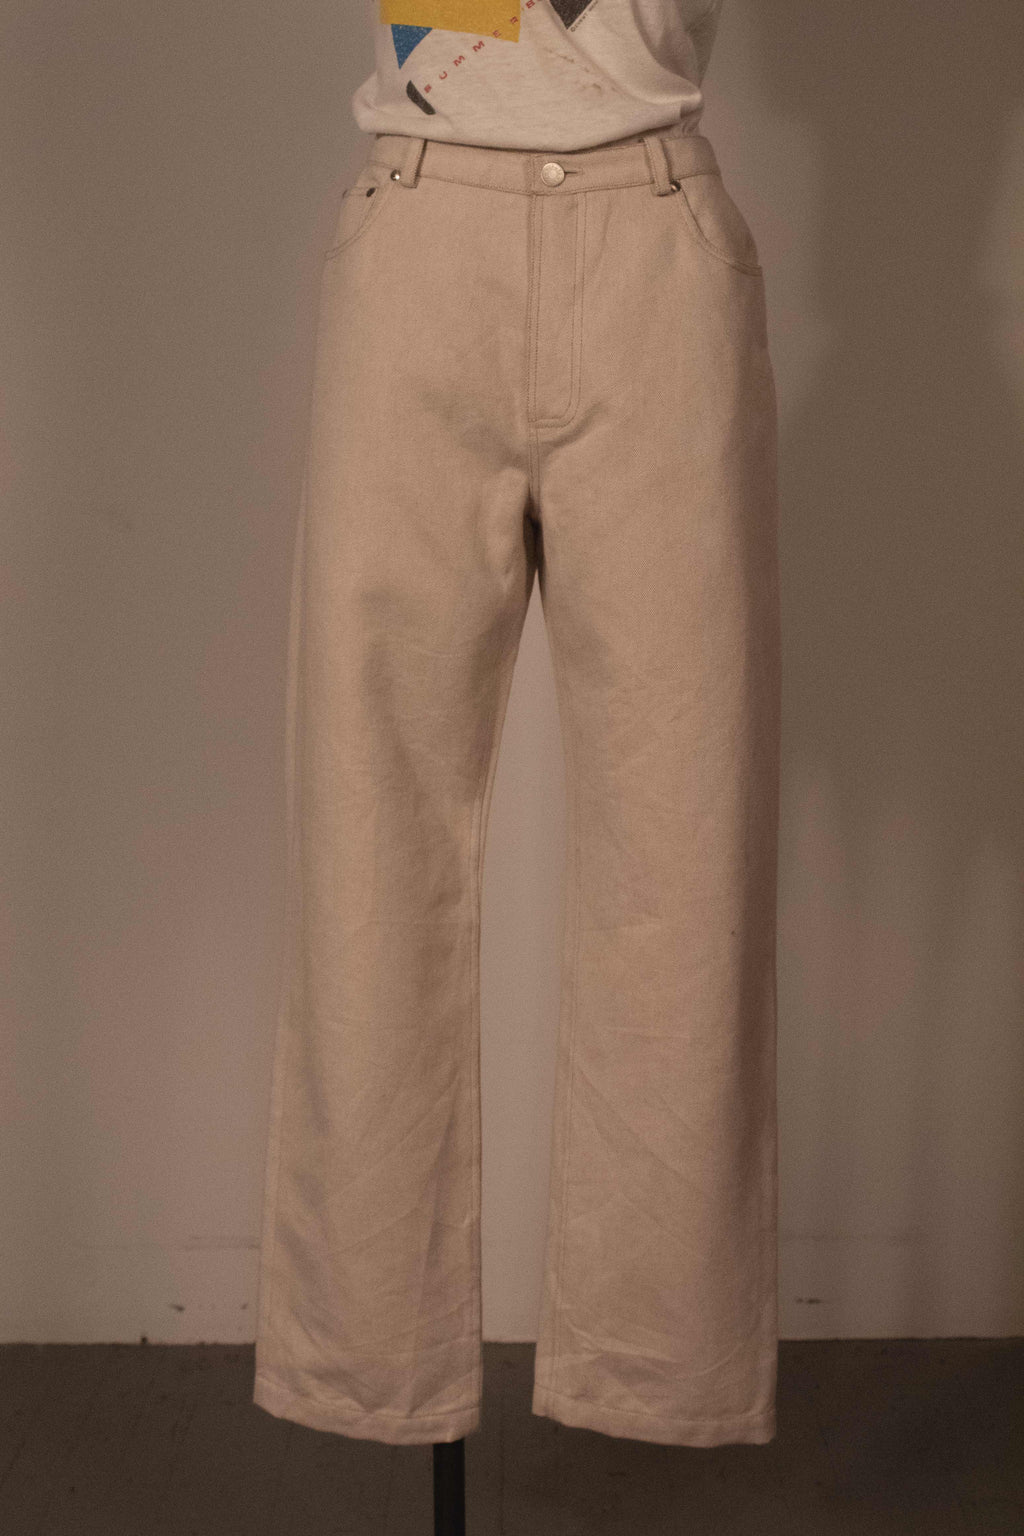 Hermes (by Margiela) cream denim pants